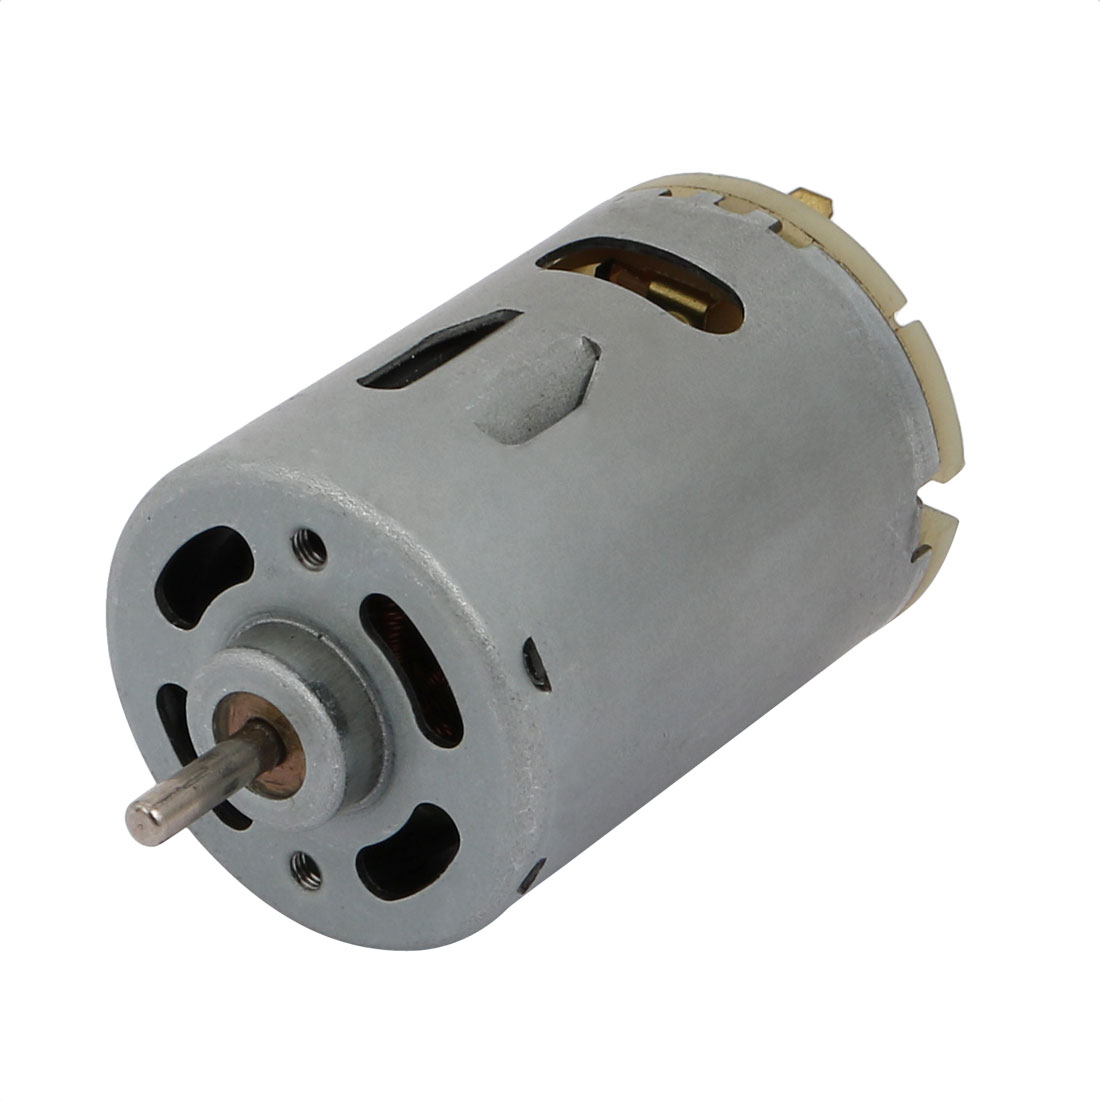 RS-545P DC24V 6000RPM 3.3mm Dia Shaft Brushed DC Electric Motor for RC Model Toy